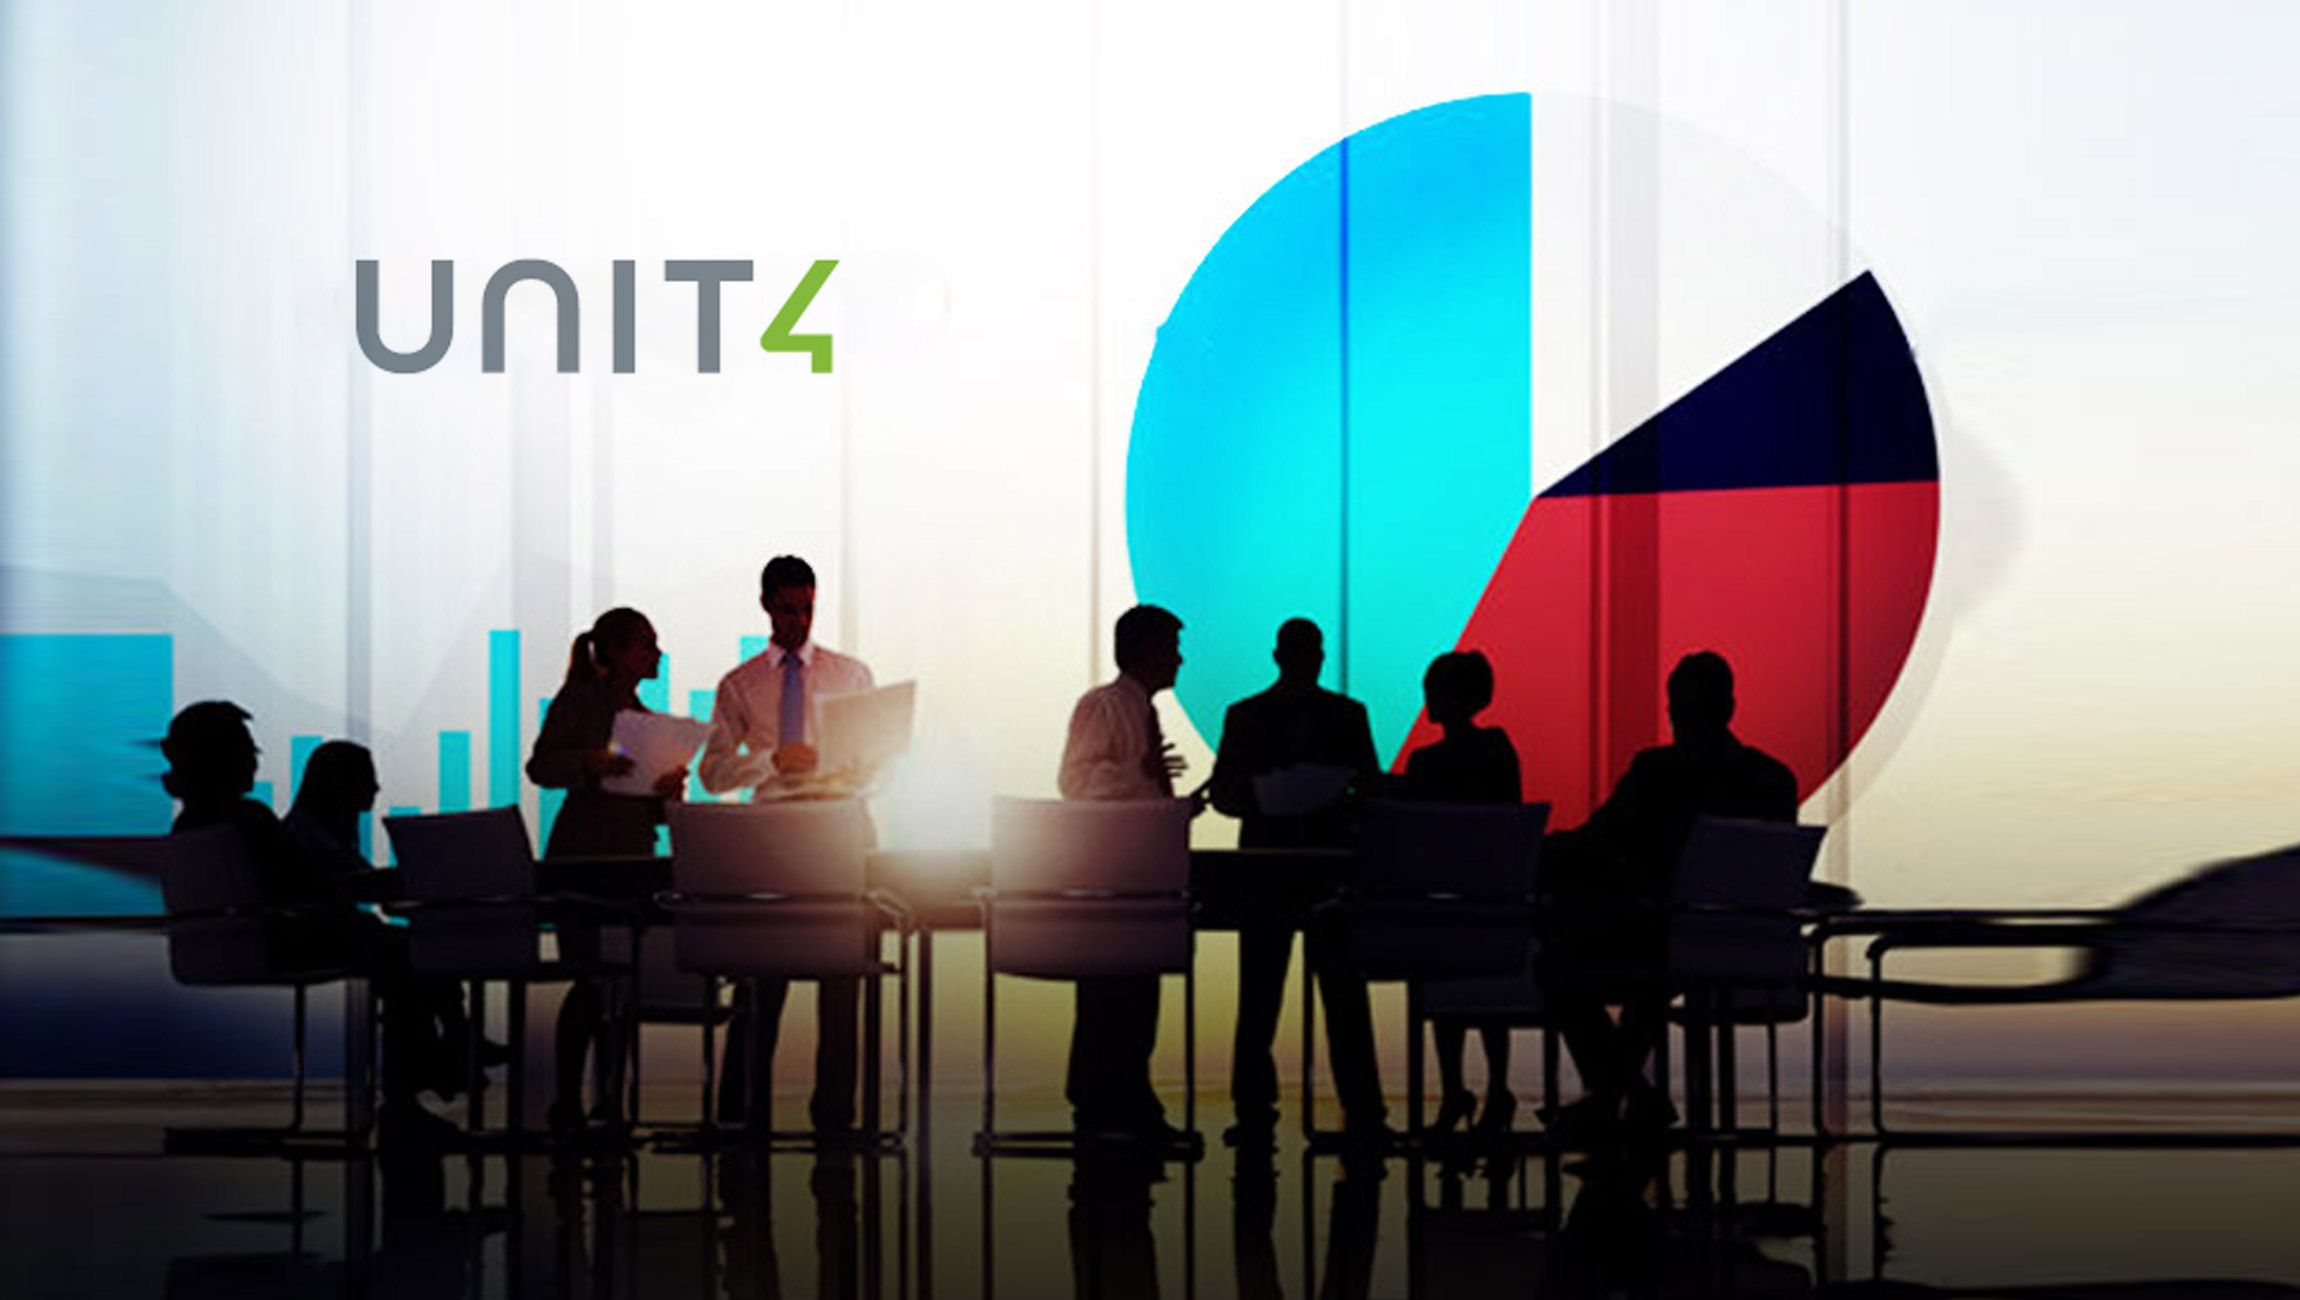 Unit4 Announces General Availability Of ERPx, A Unified Cloud Platform For Mid-Market People-Centric Organizations